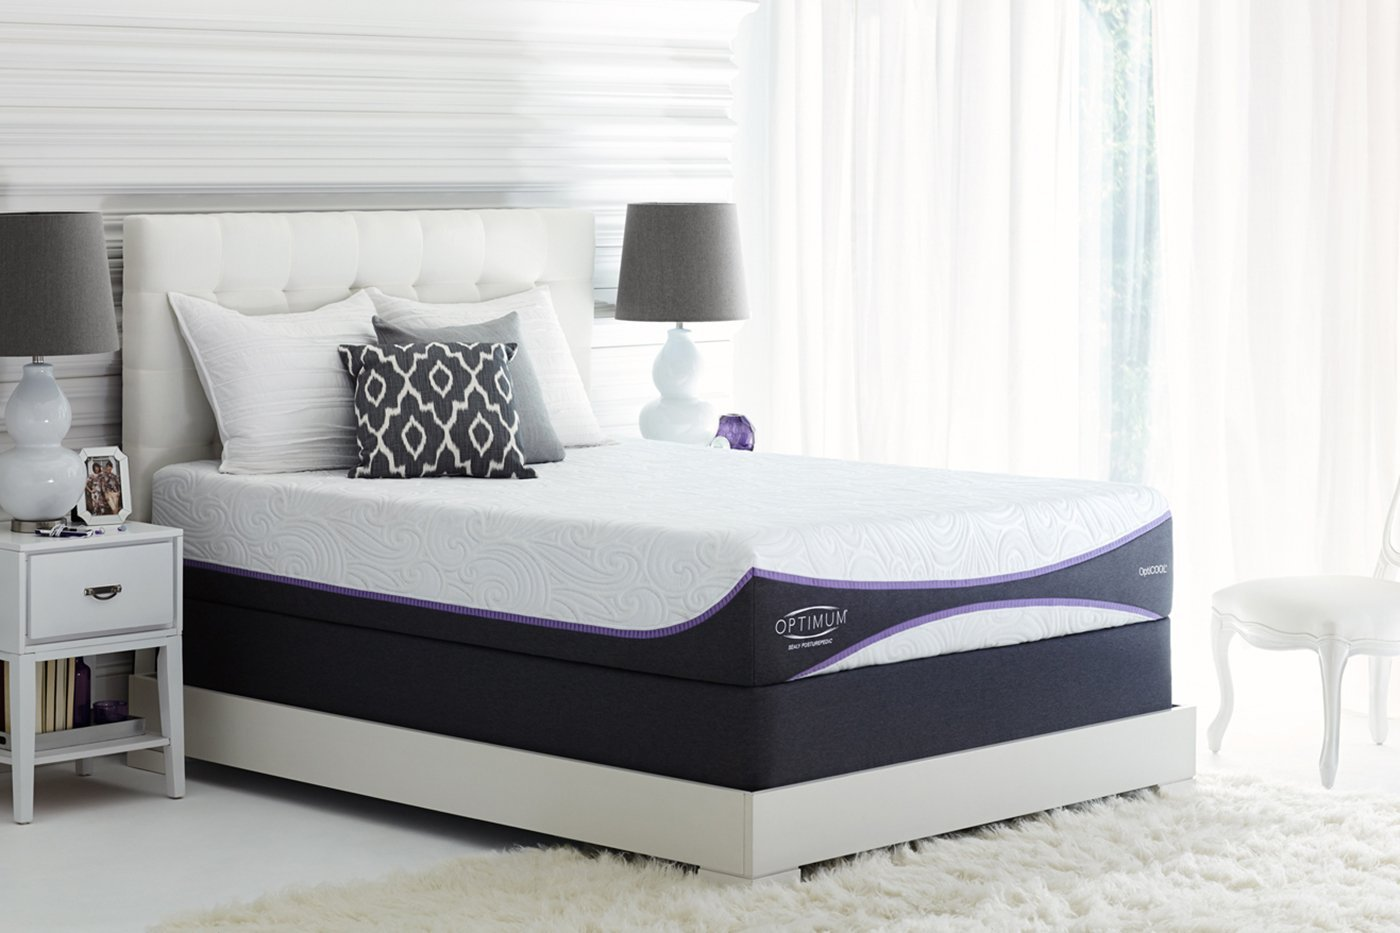 Sealy Optimum Elation Gold Mattress